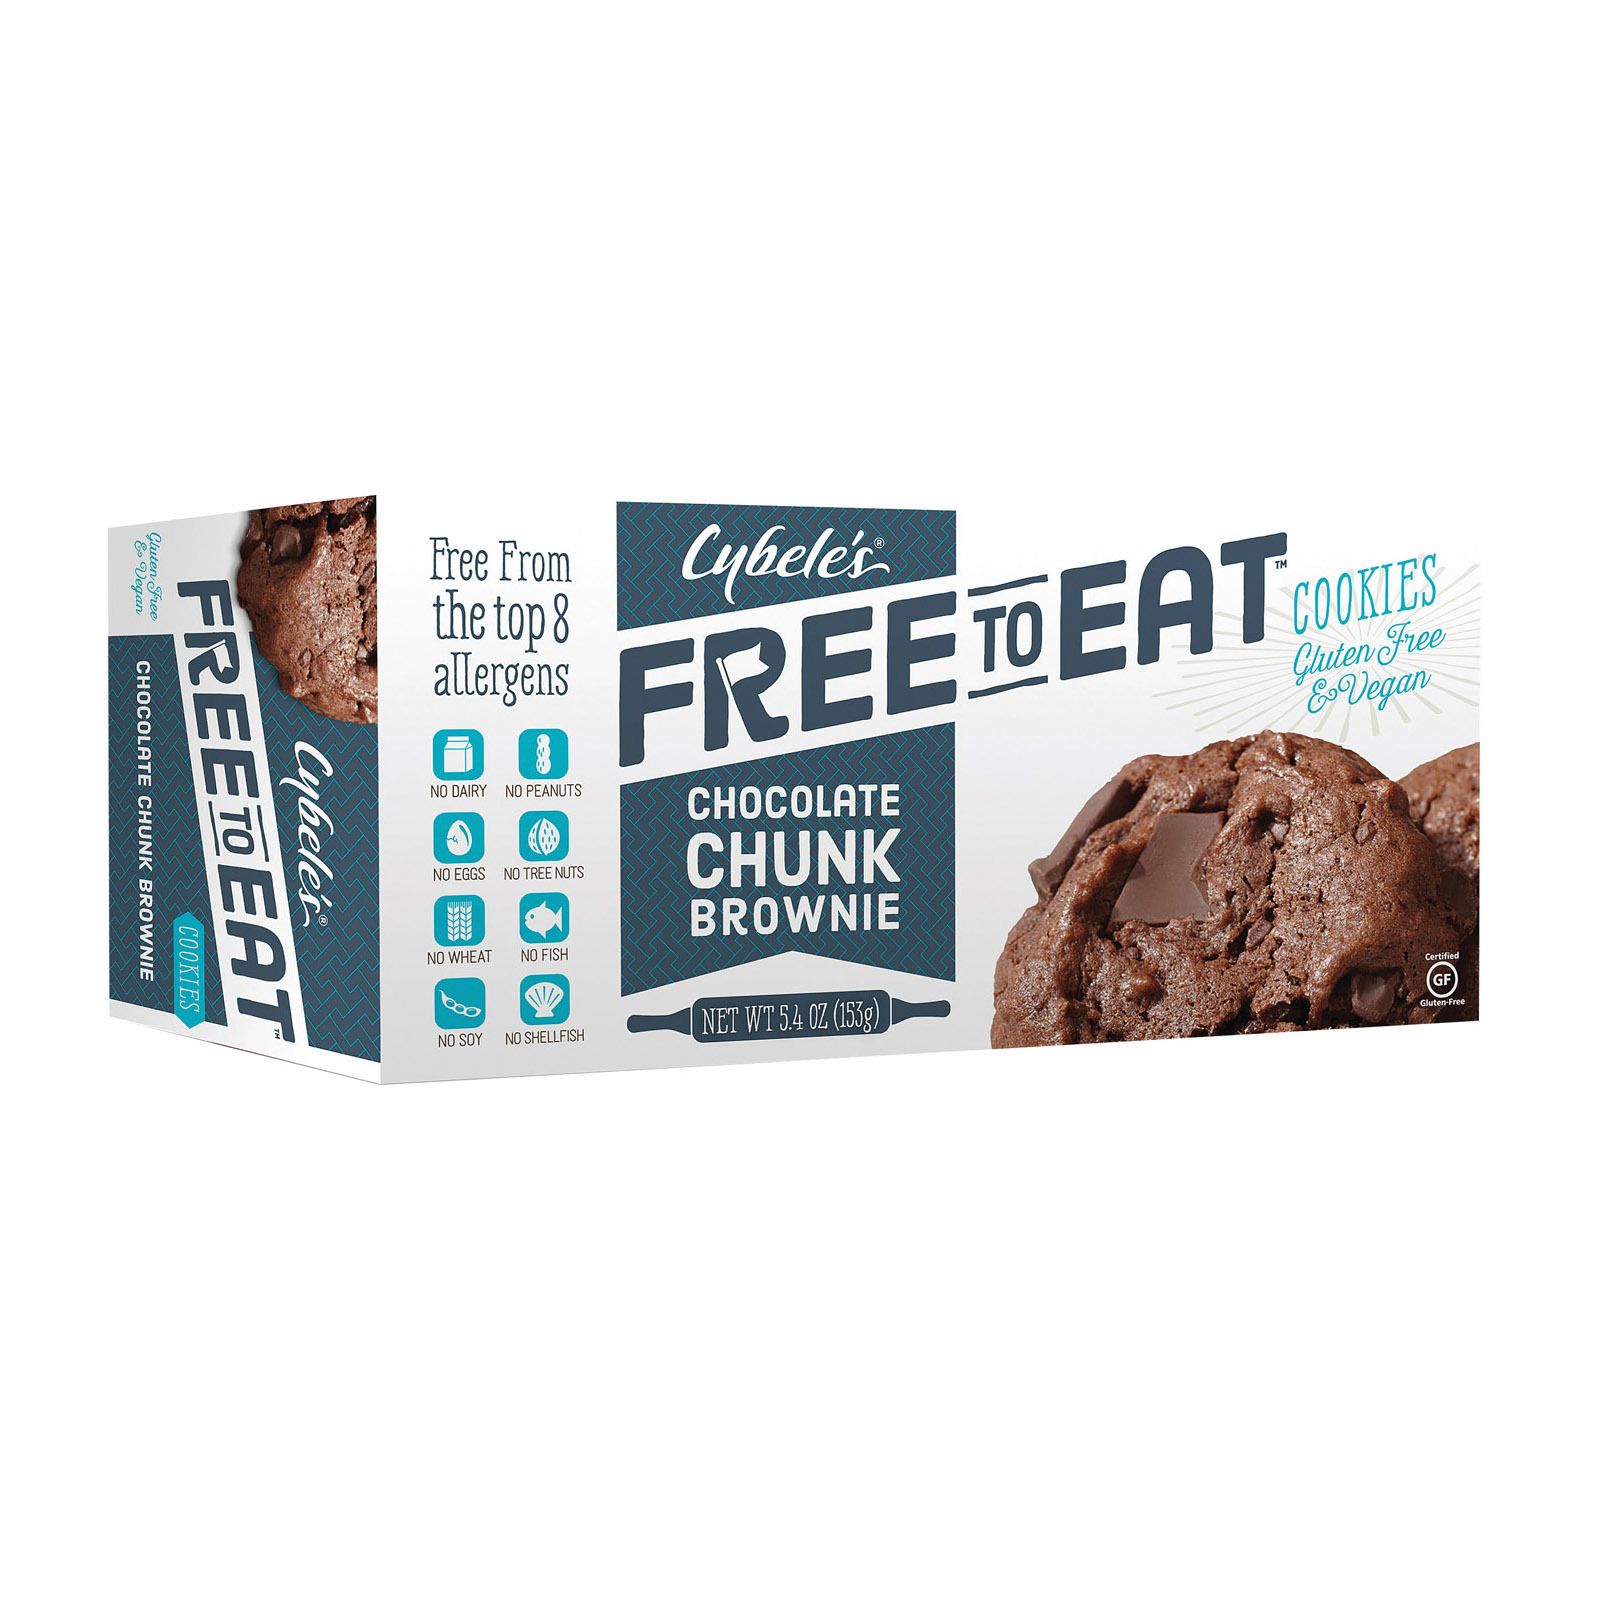 Cybel's Free To Eat Chocolate Chunk Brownie Cookies - Case of 6 - 5.4 oz.